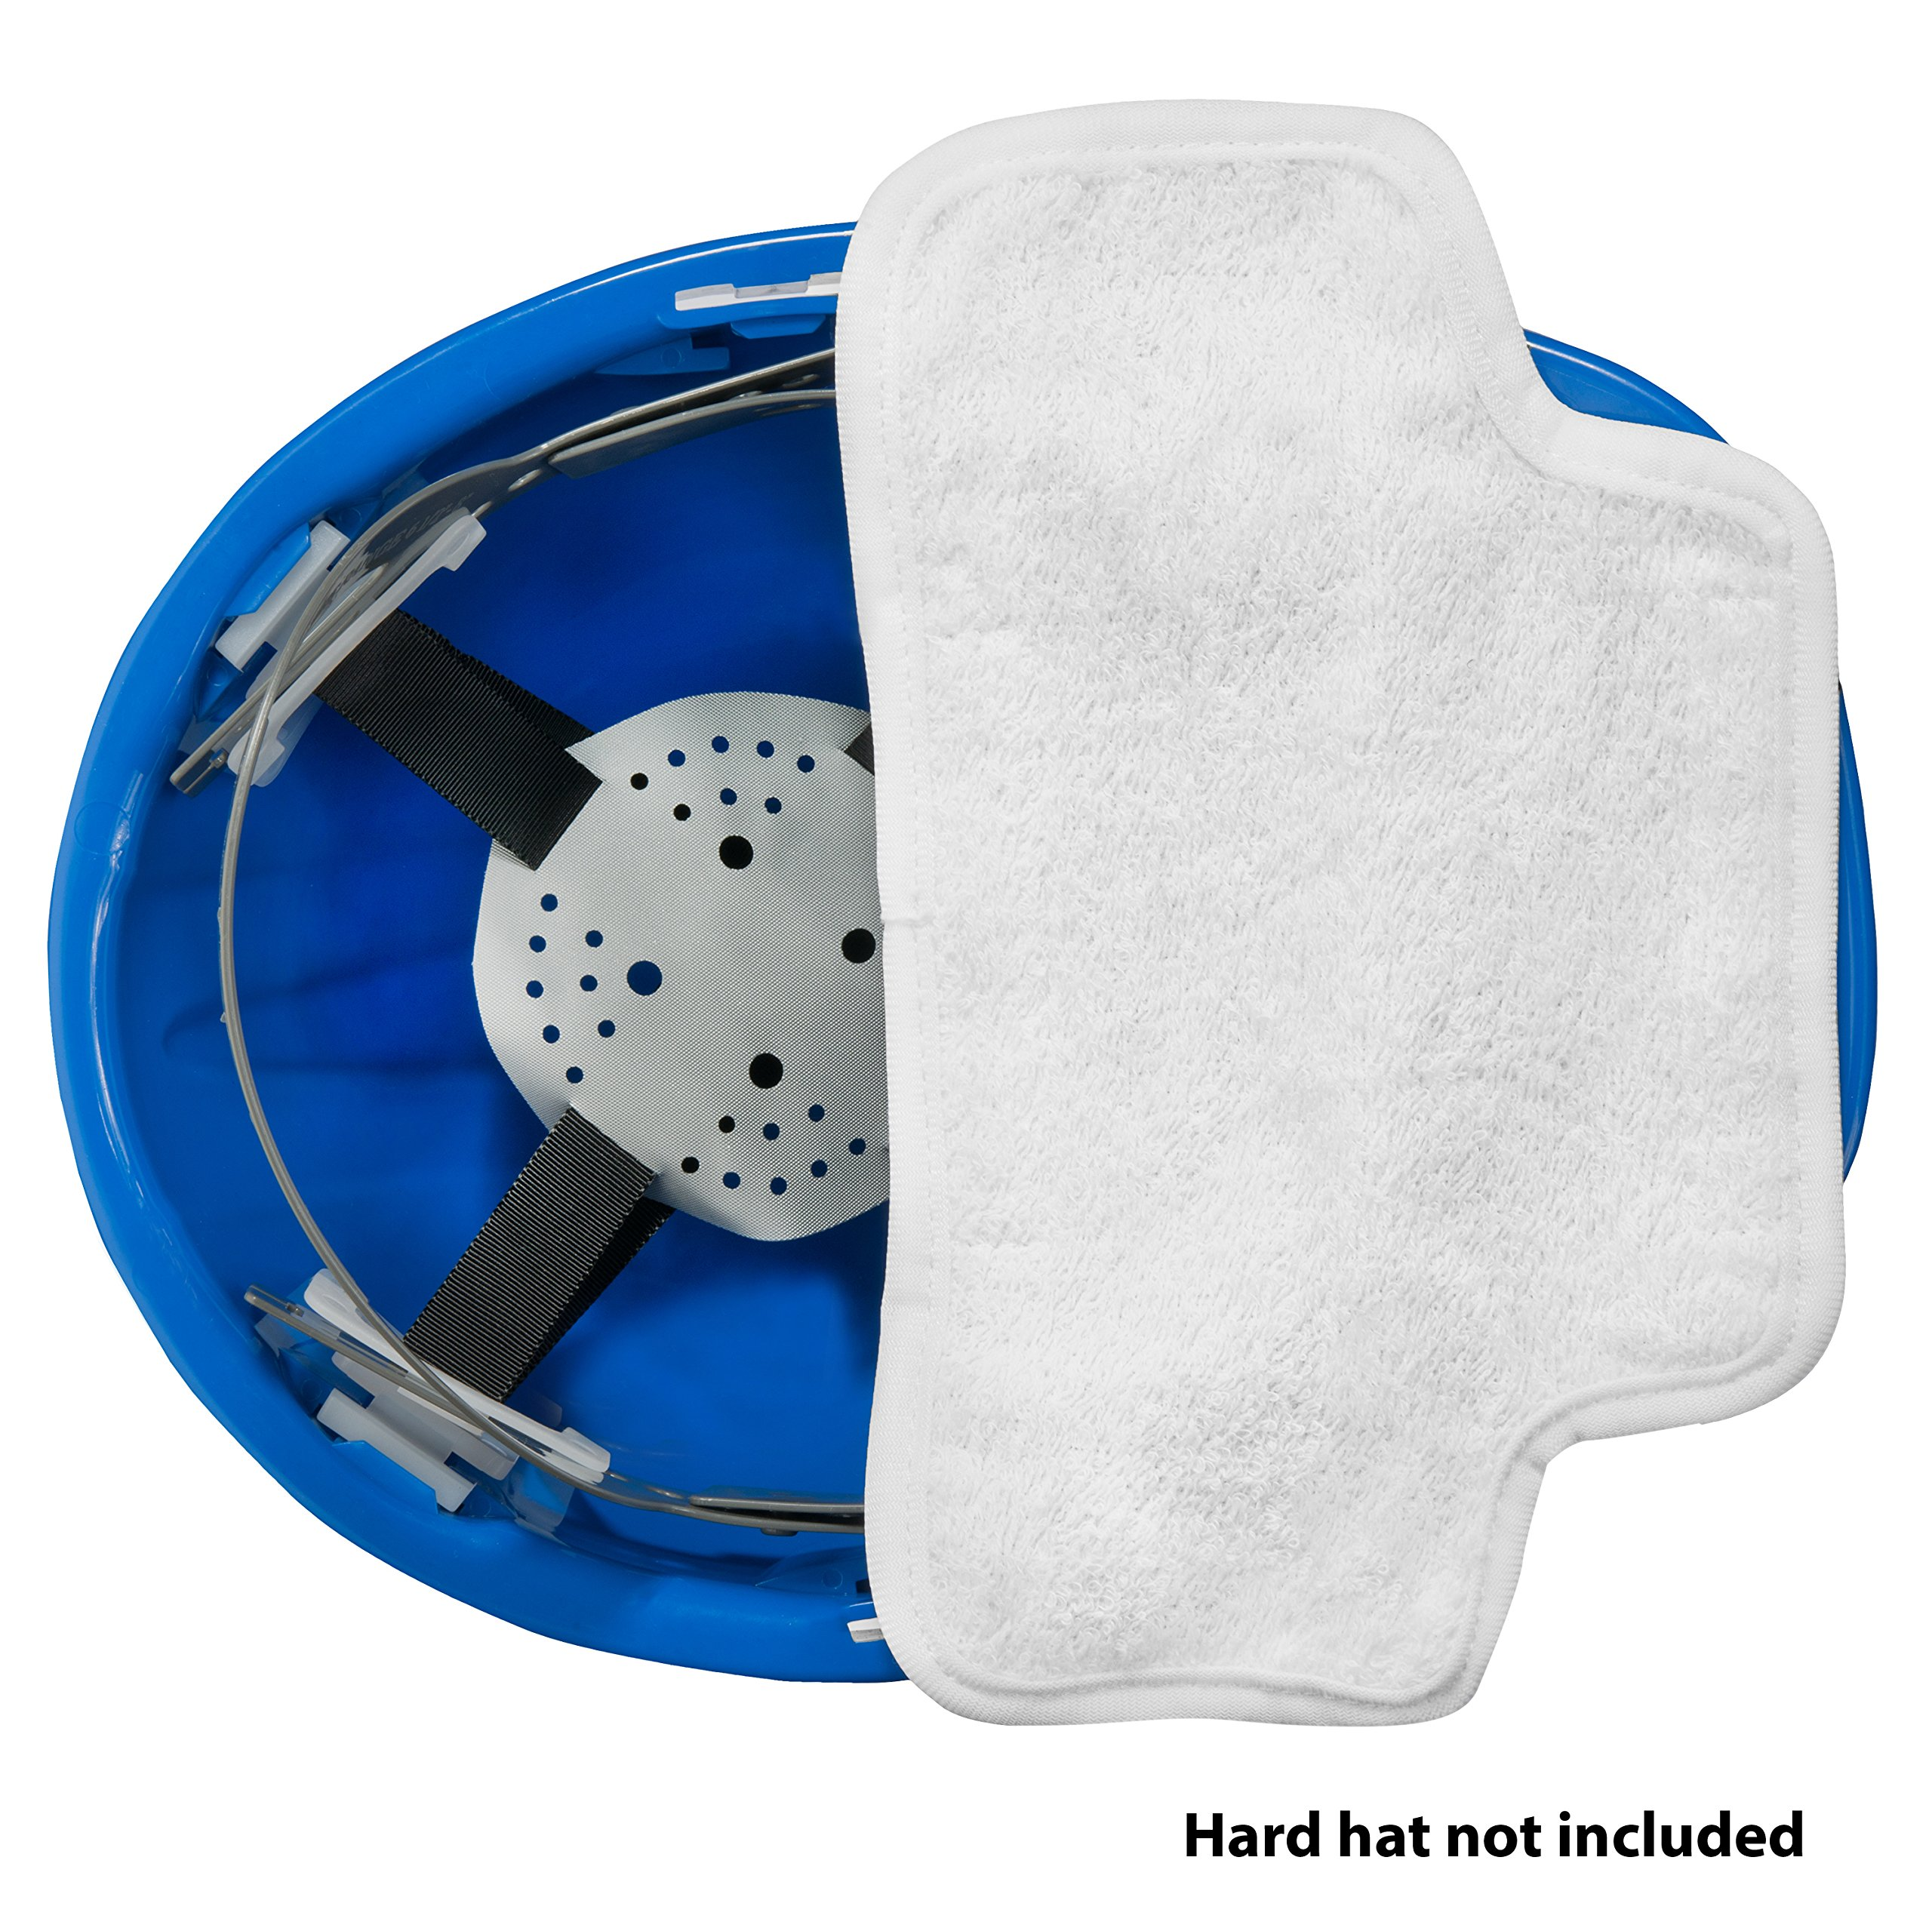 THREE Cotton Sweatbands for hard hats SOFT COTTON - EASY VELCRO ATTACHMENT - BEST VALUE - WASHABLE AND ESPECIALLY EASY TO ATTACH TO HARD HATS. by Paulex Solutions (Image #4)